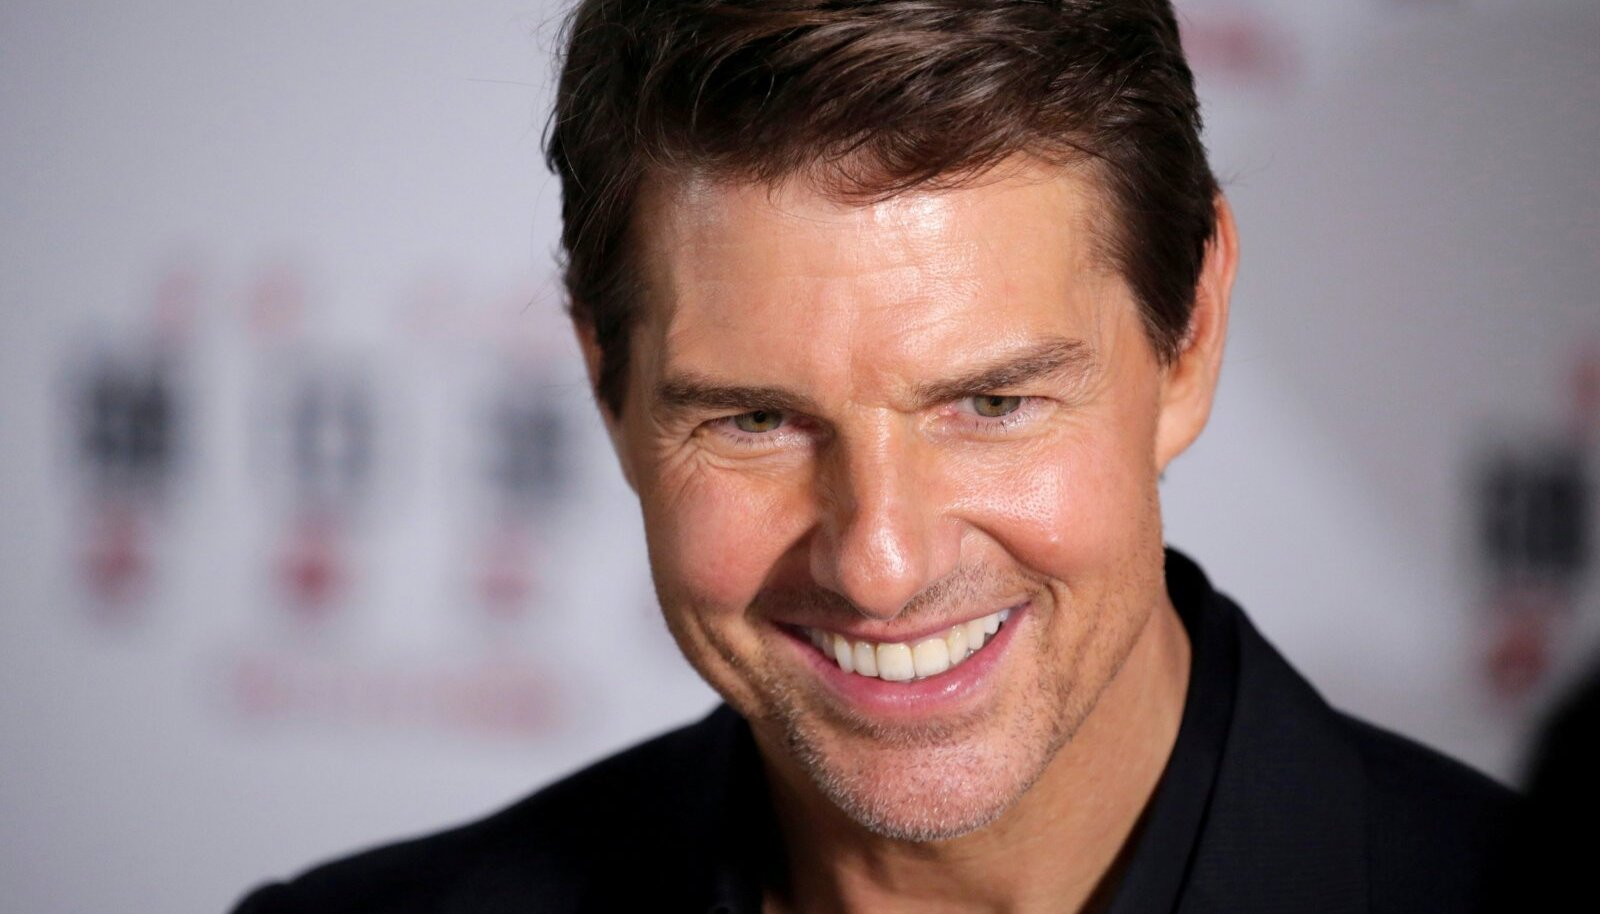 """FILE PHOTO: Cast member Tom Cruise attends a news conference promoting his upcoming film """"Mission: Impossible - Fallout"""" in Beijing"""